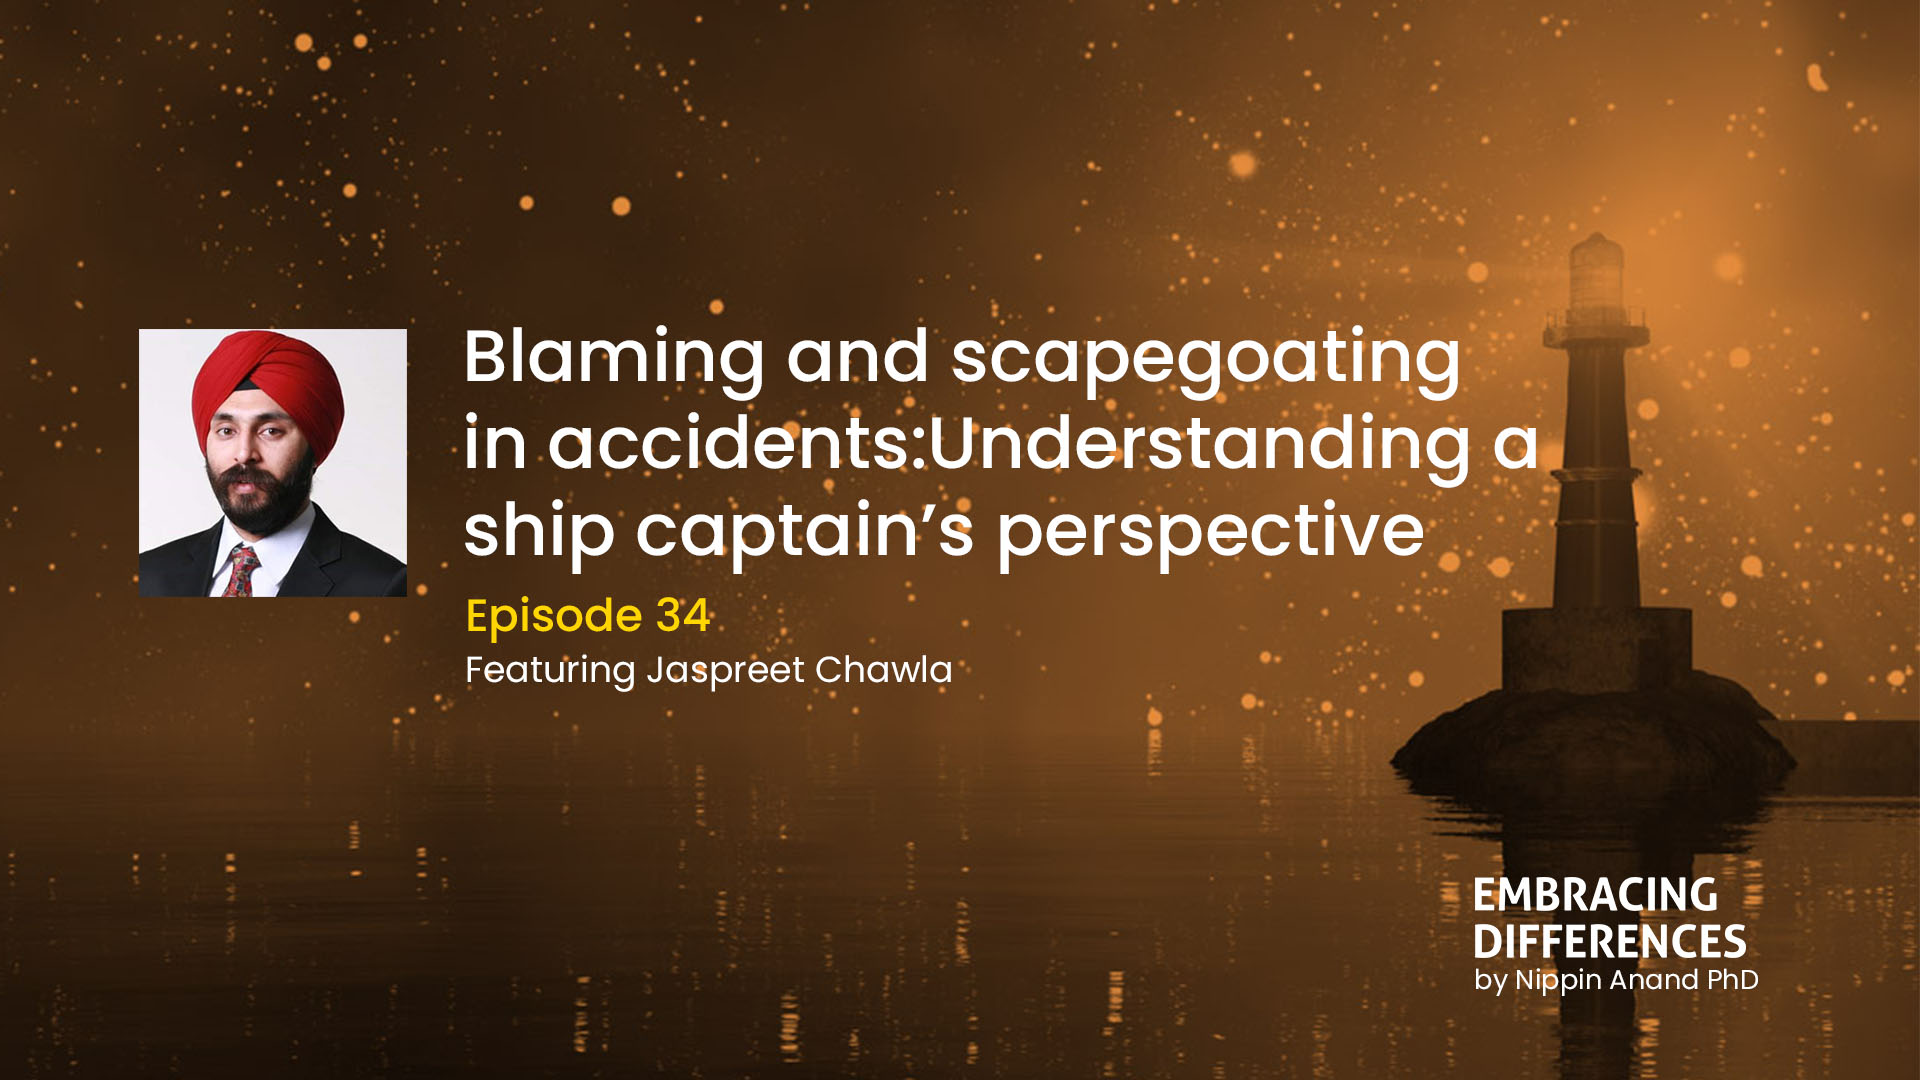 Blaming and scapegoating in accidents: Understanding a ship captain's perspective